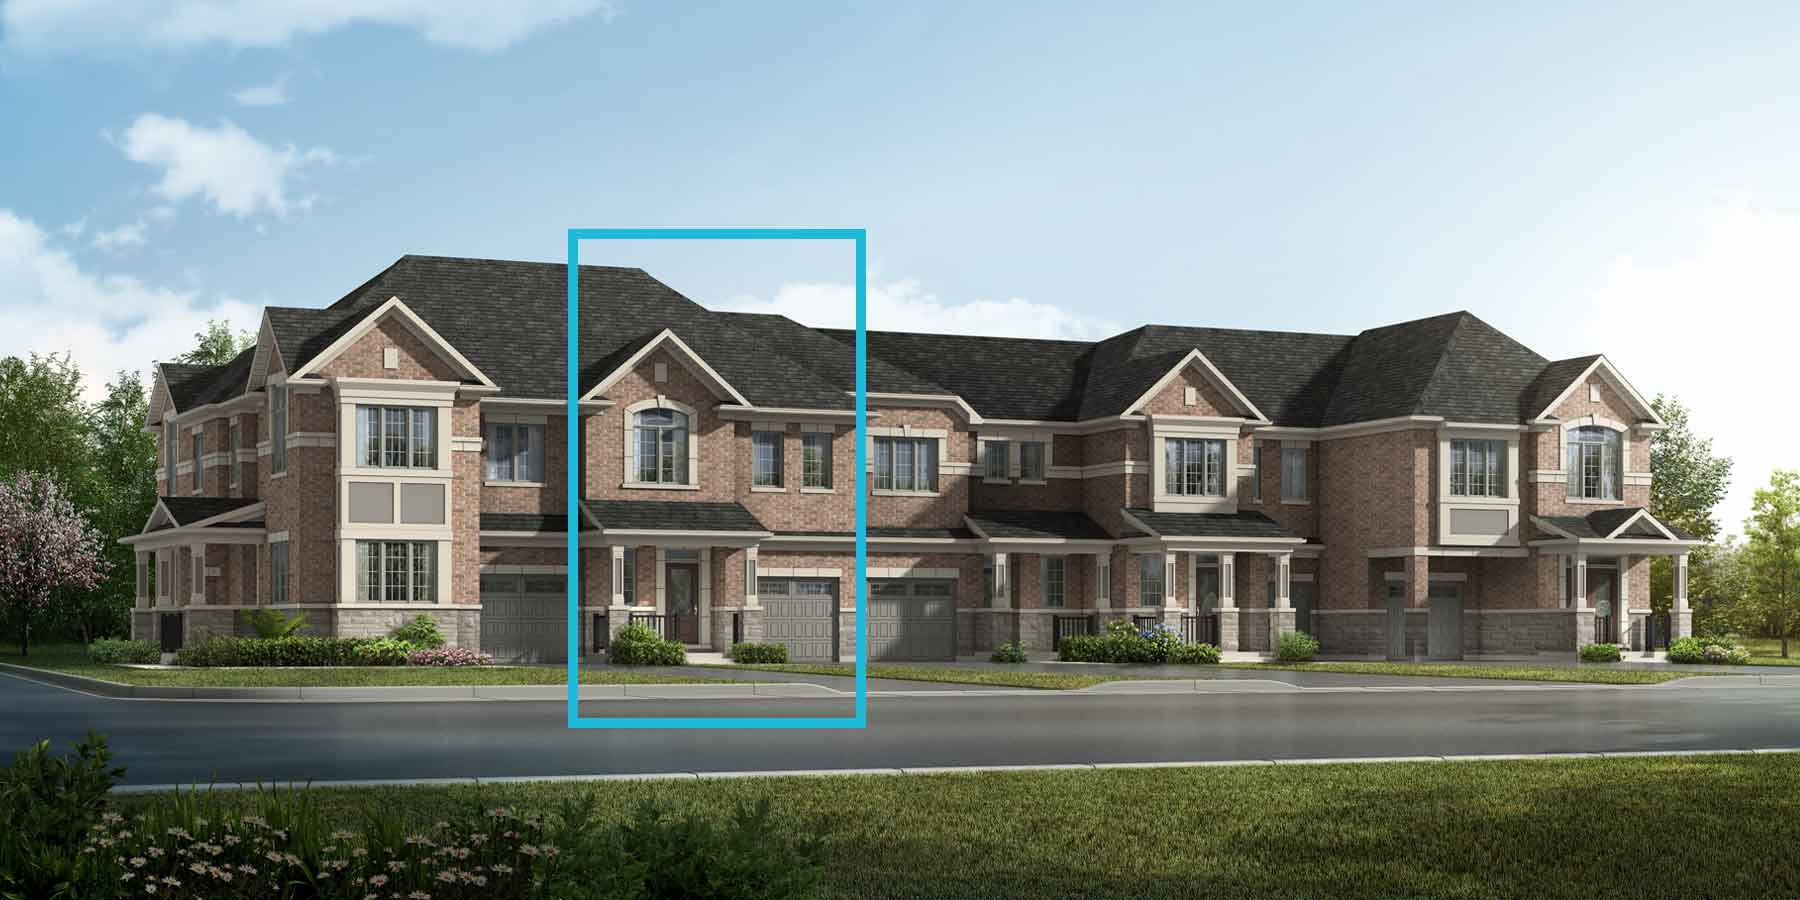 Kelly Plan TownHomes at Springwater in Markham Ontario by Mattamy Homes